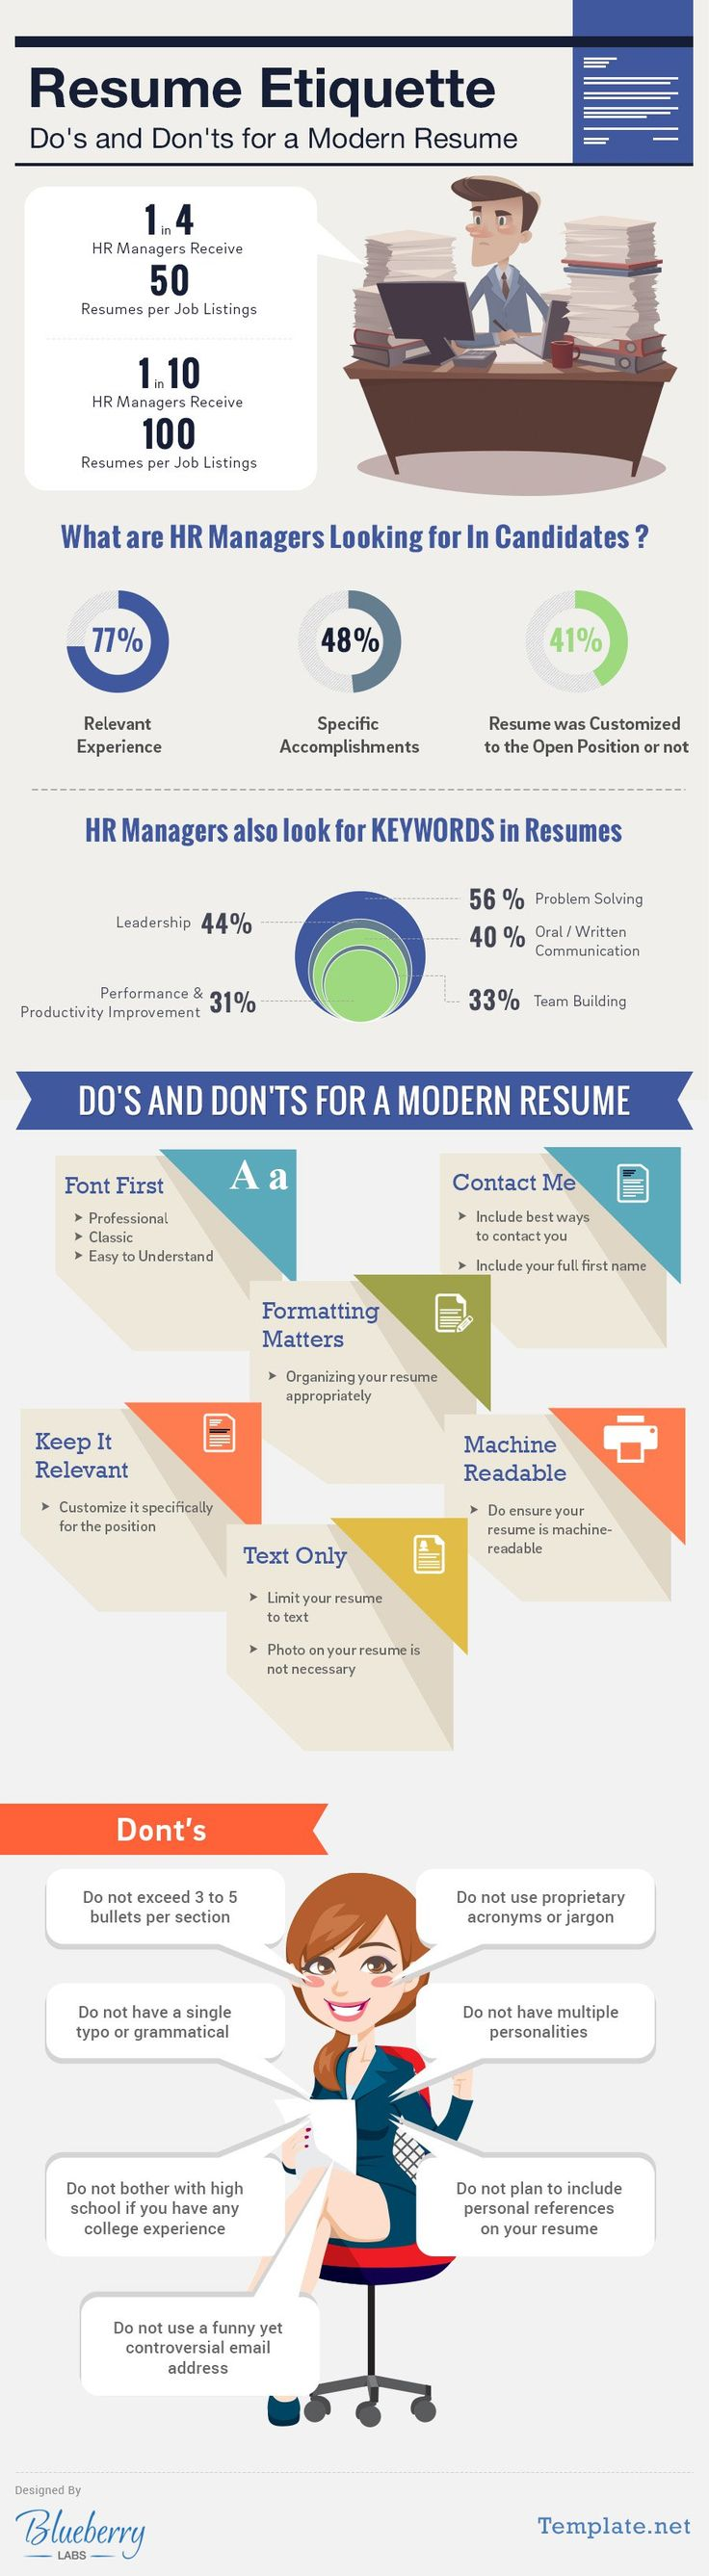 69 Best Images About Resumes Cover Letters On Pinterest